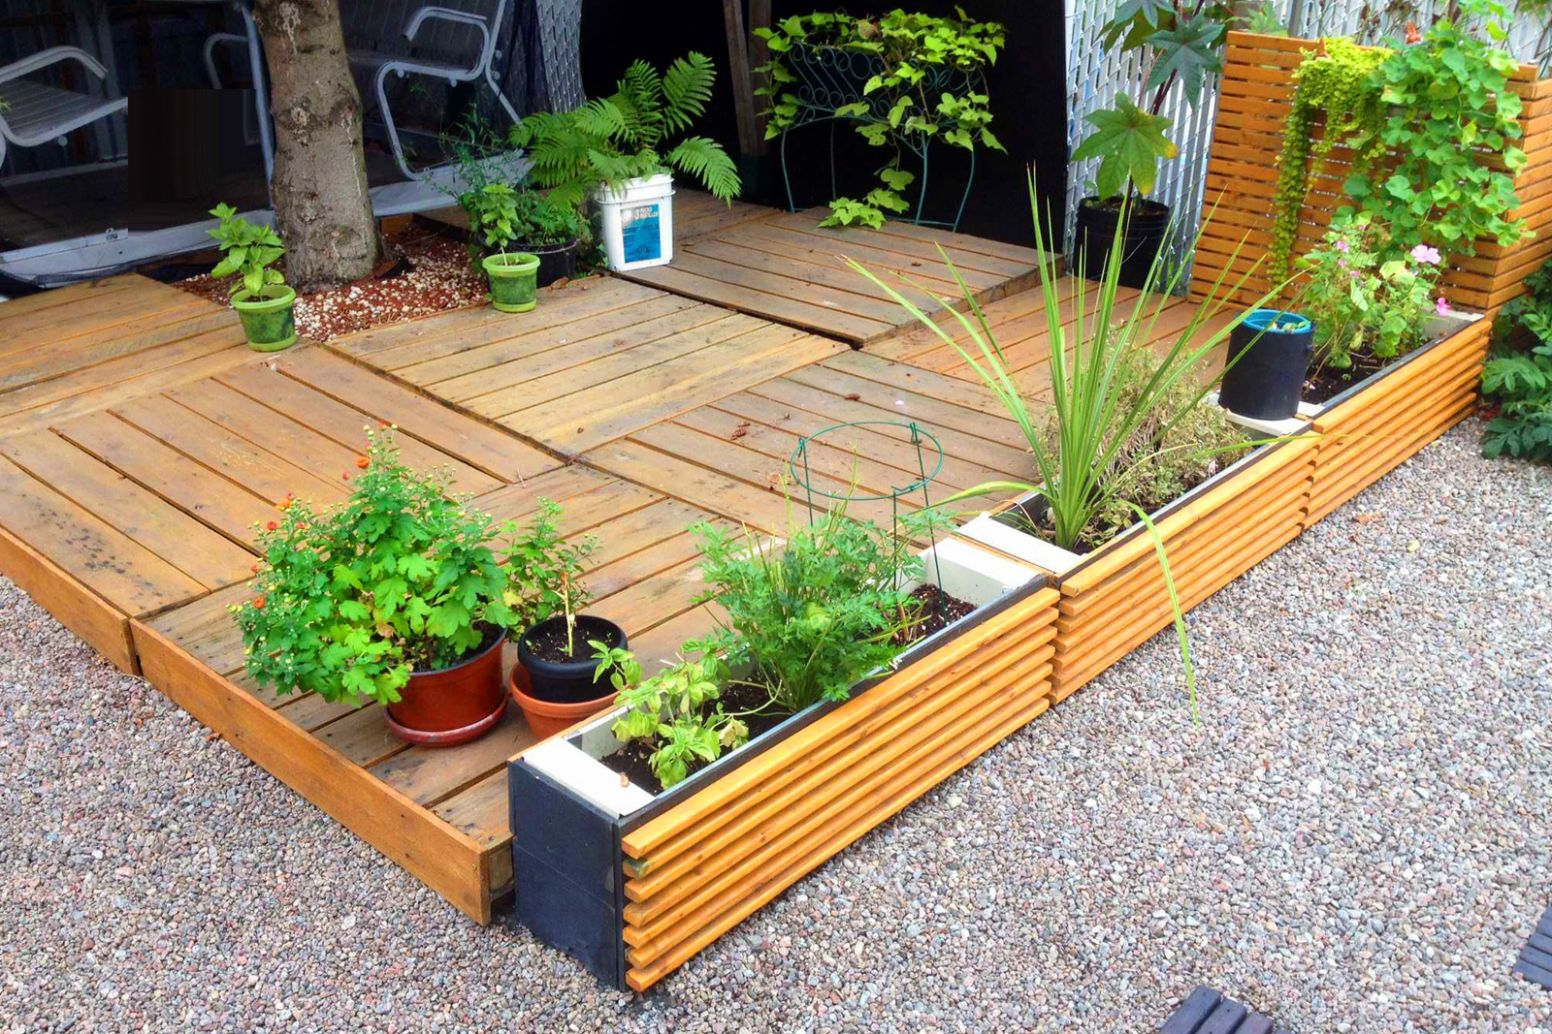 11 Simple And Easy Landscaping Ideas | HouseLogic